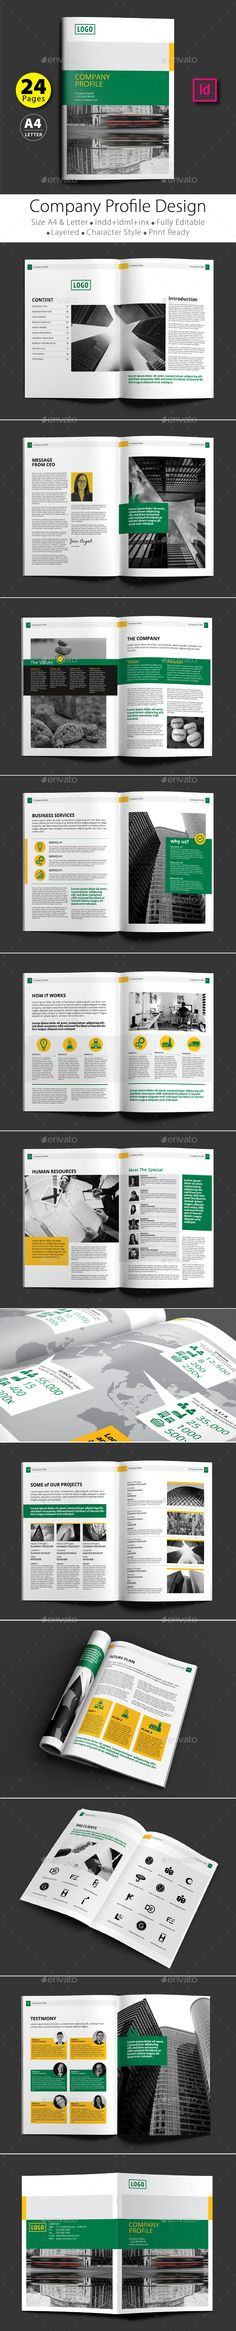 Company Profile Template v05 Company profile, Brochures and - professional business profile template